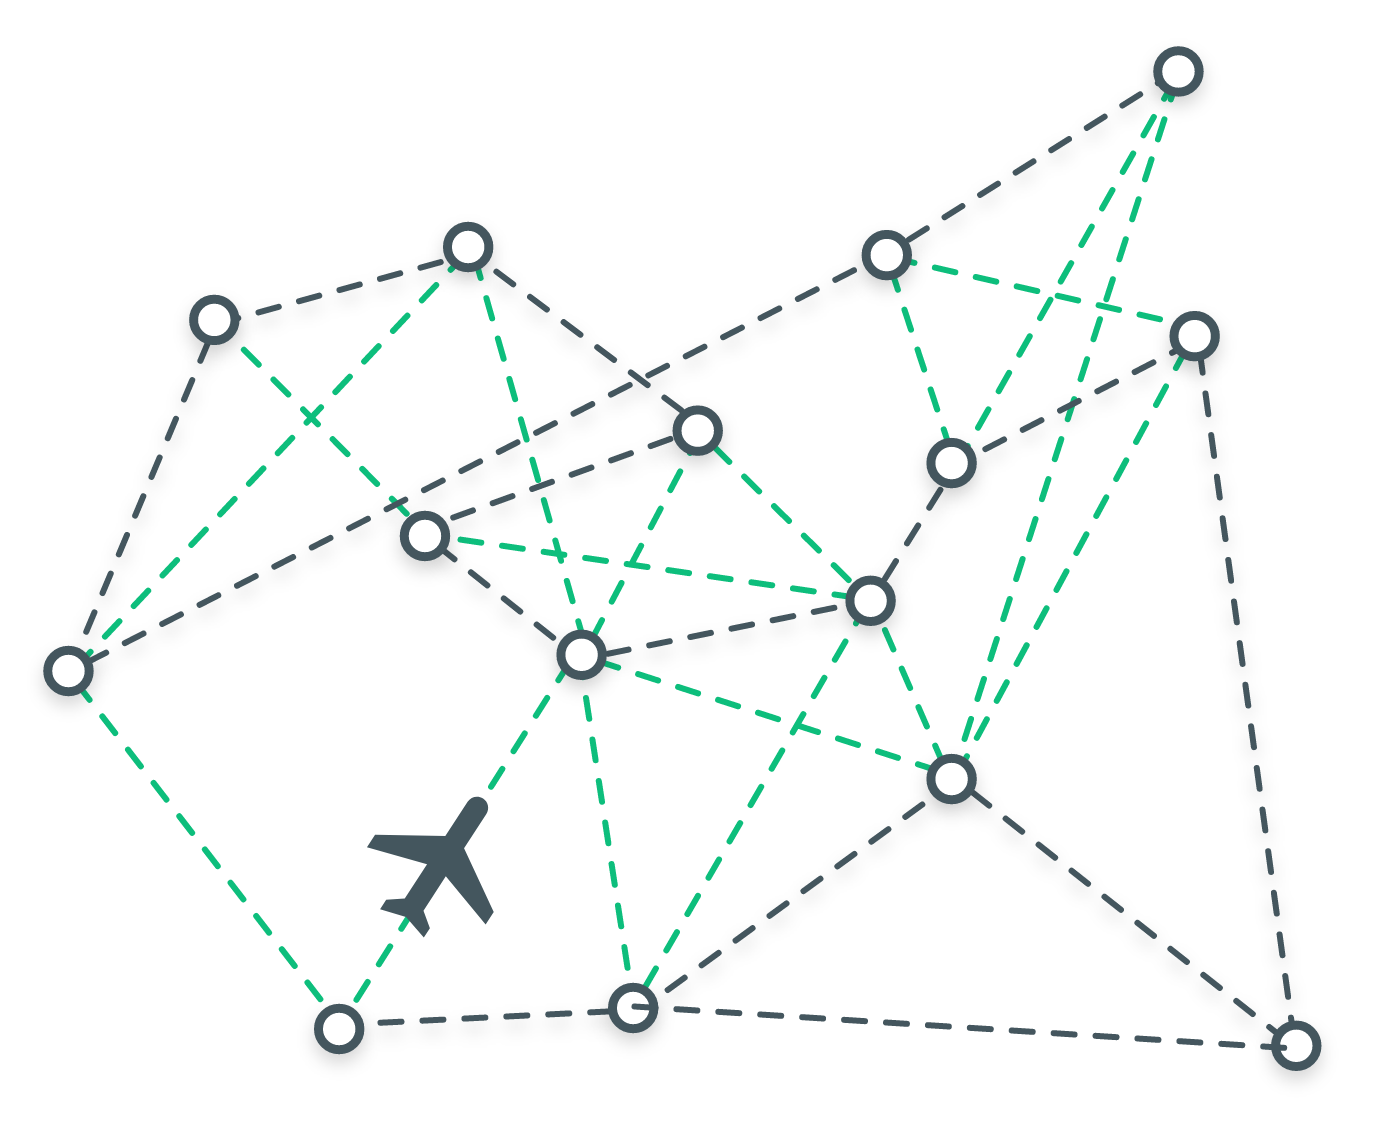 A green and grey graphic showing a small airplane and a web of different flight paths, represented by dotted lines.